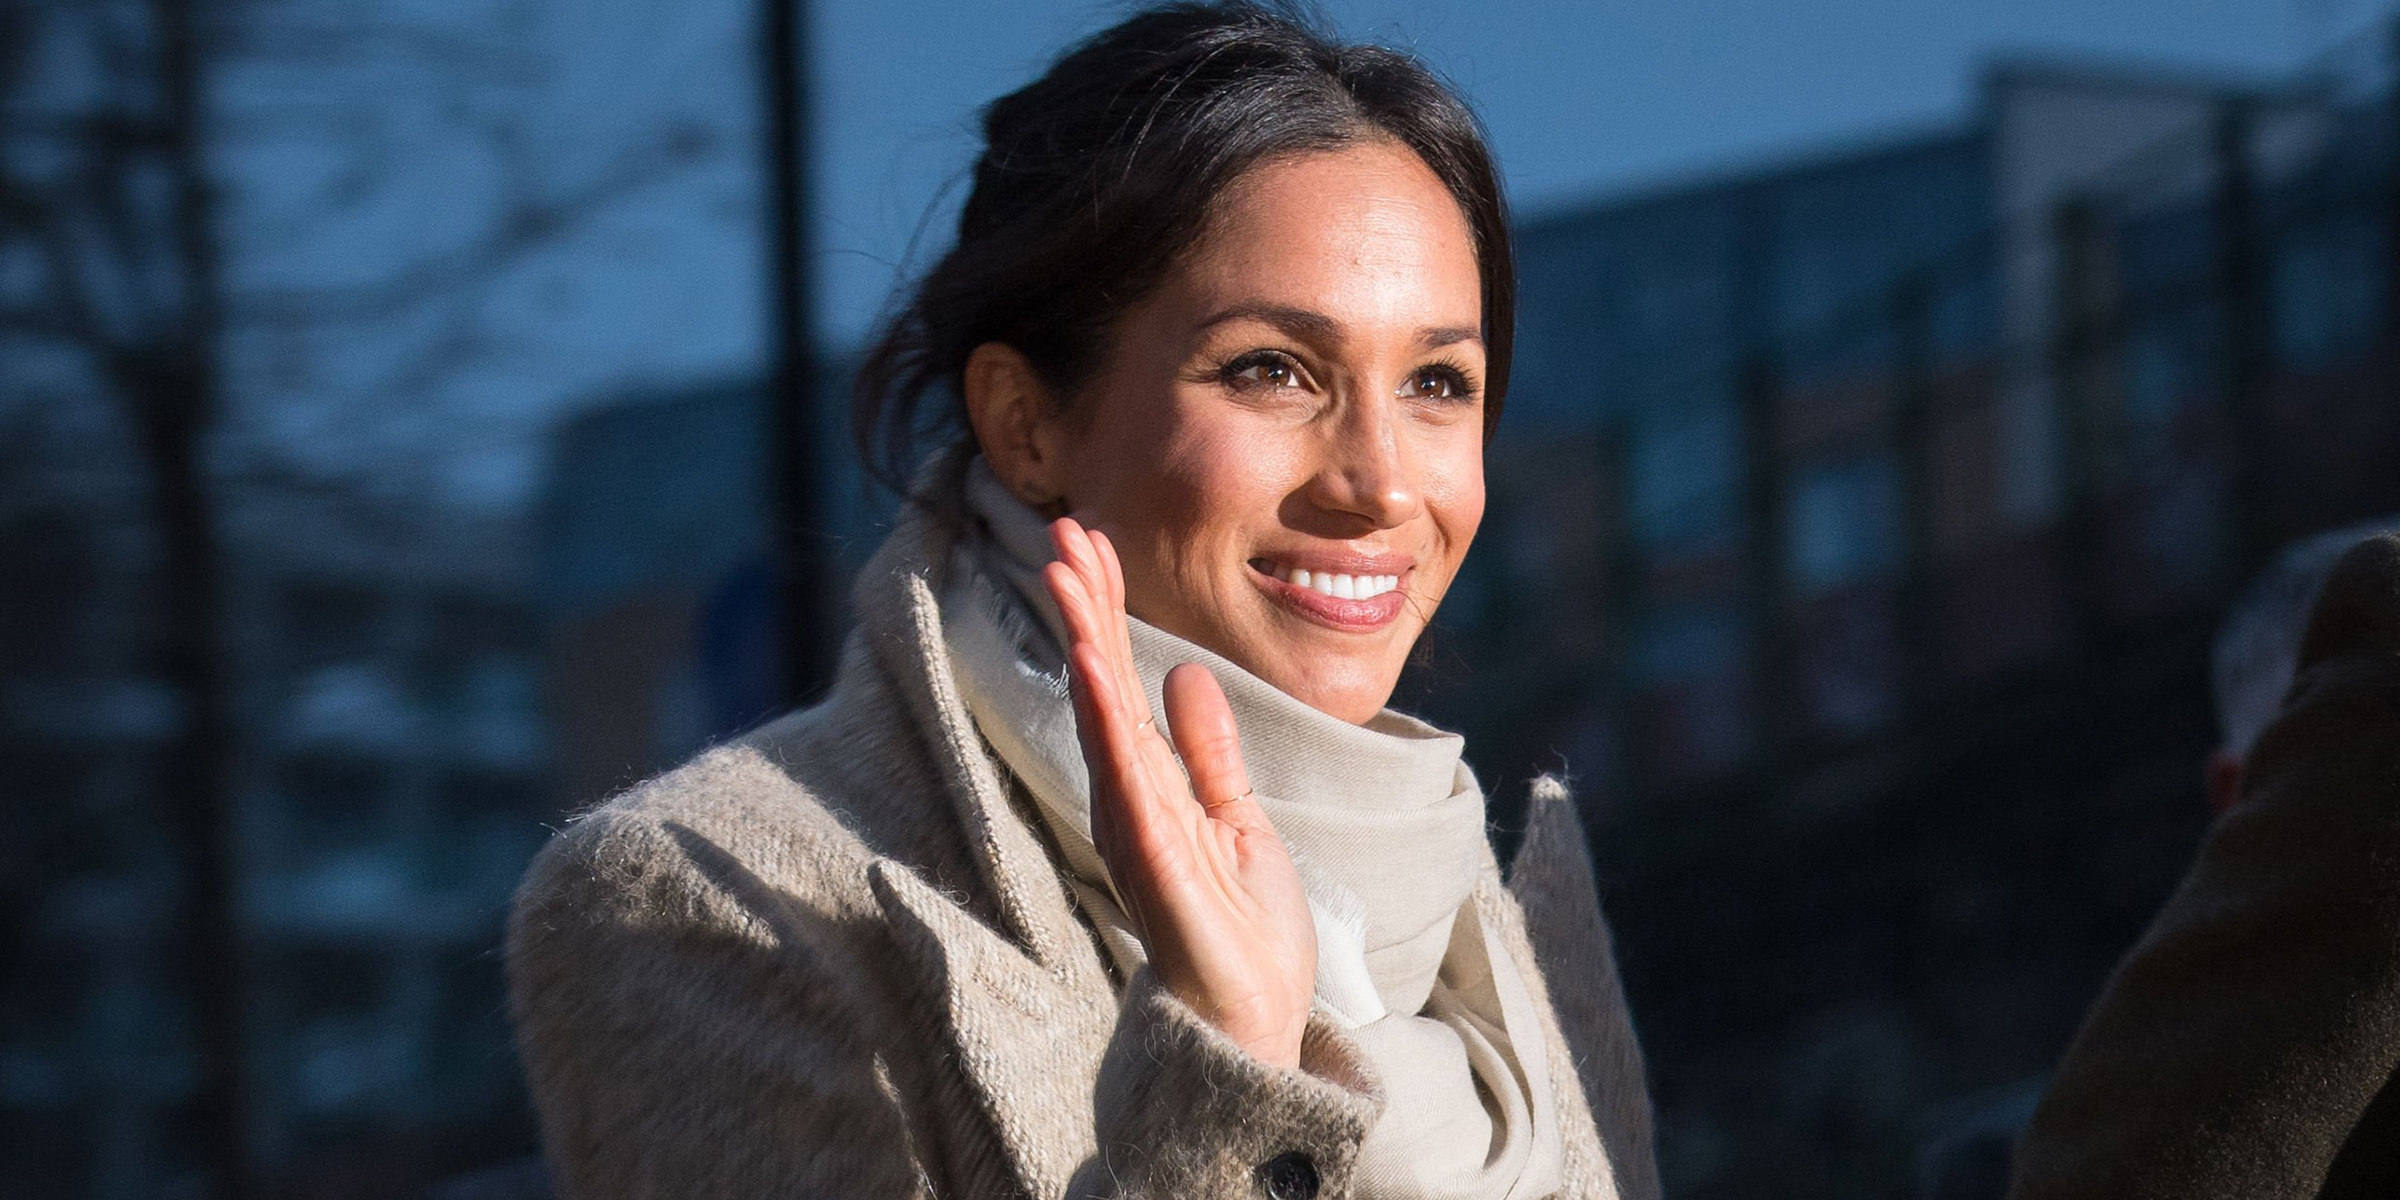 Meghan Markle spotted driving in Canada in new photos after eventful week for royals